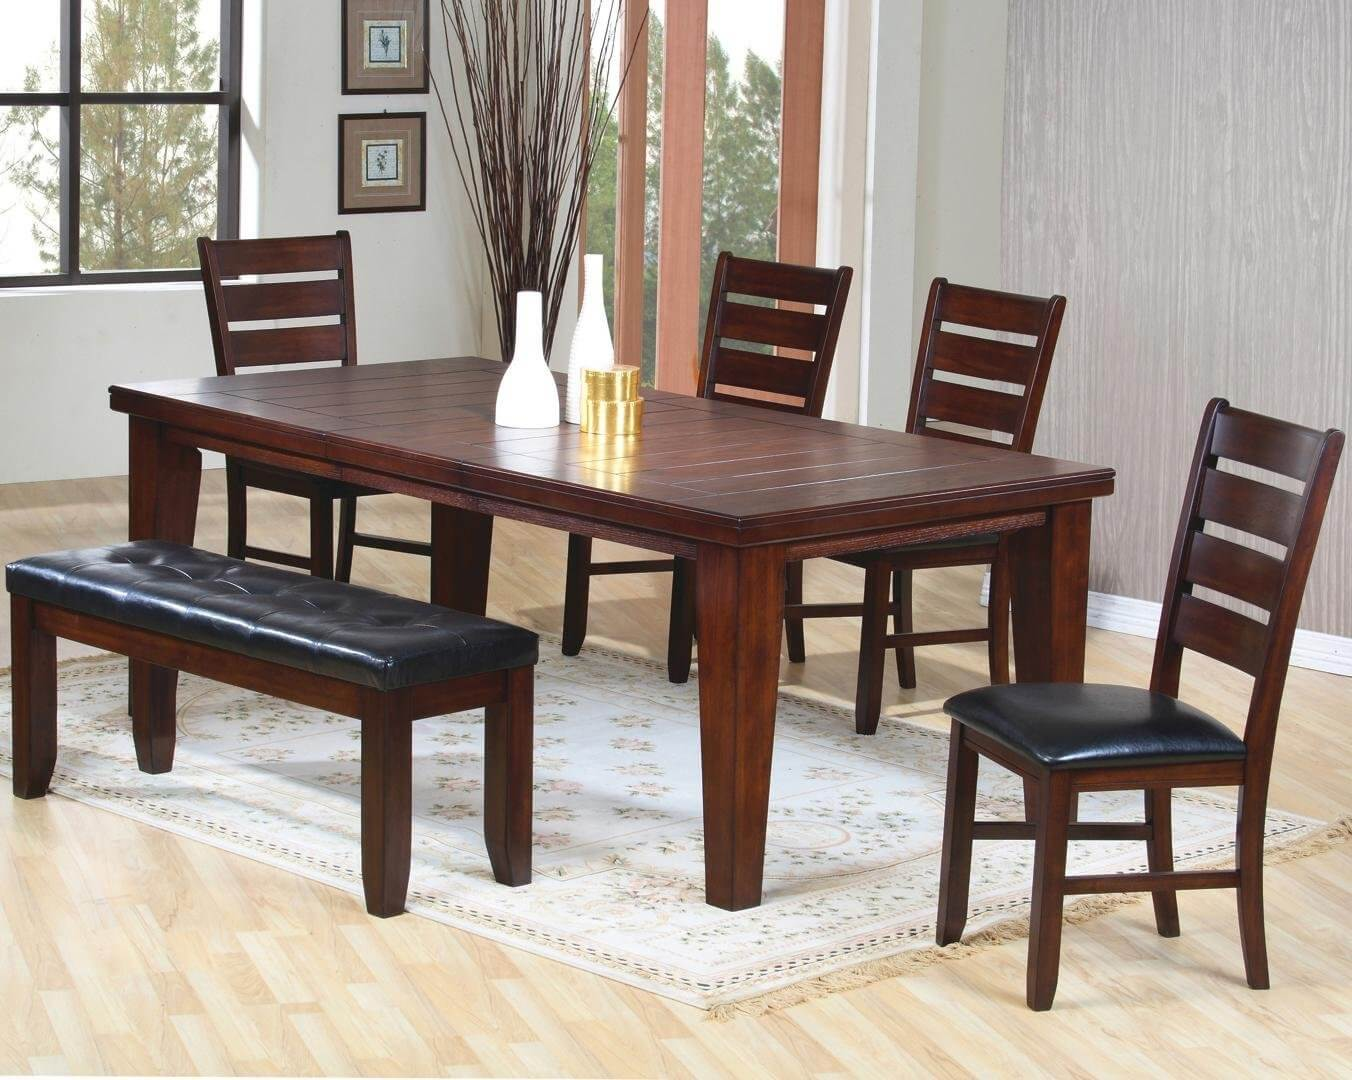 Solid wood six piece dining set with cushioned bench. The finish is dark oak wood veneer. The table is sturdy with 4 solid wood legs (along with the bench). I like the size of this table because it very comfortably accommodates six people.